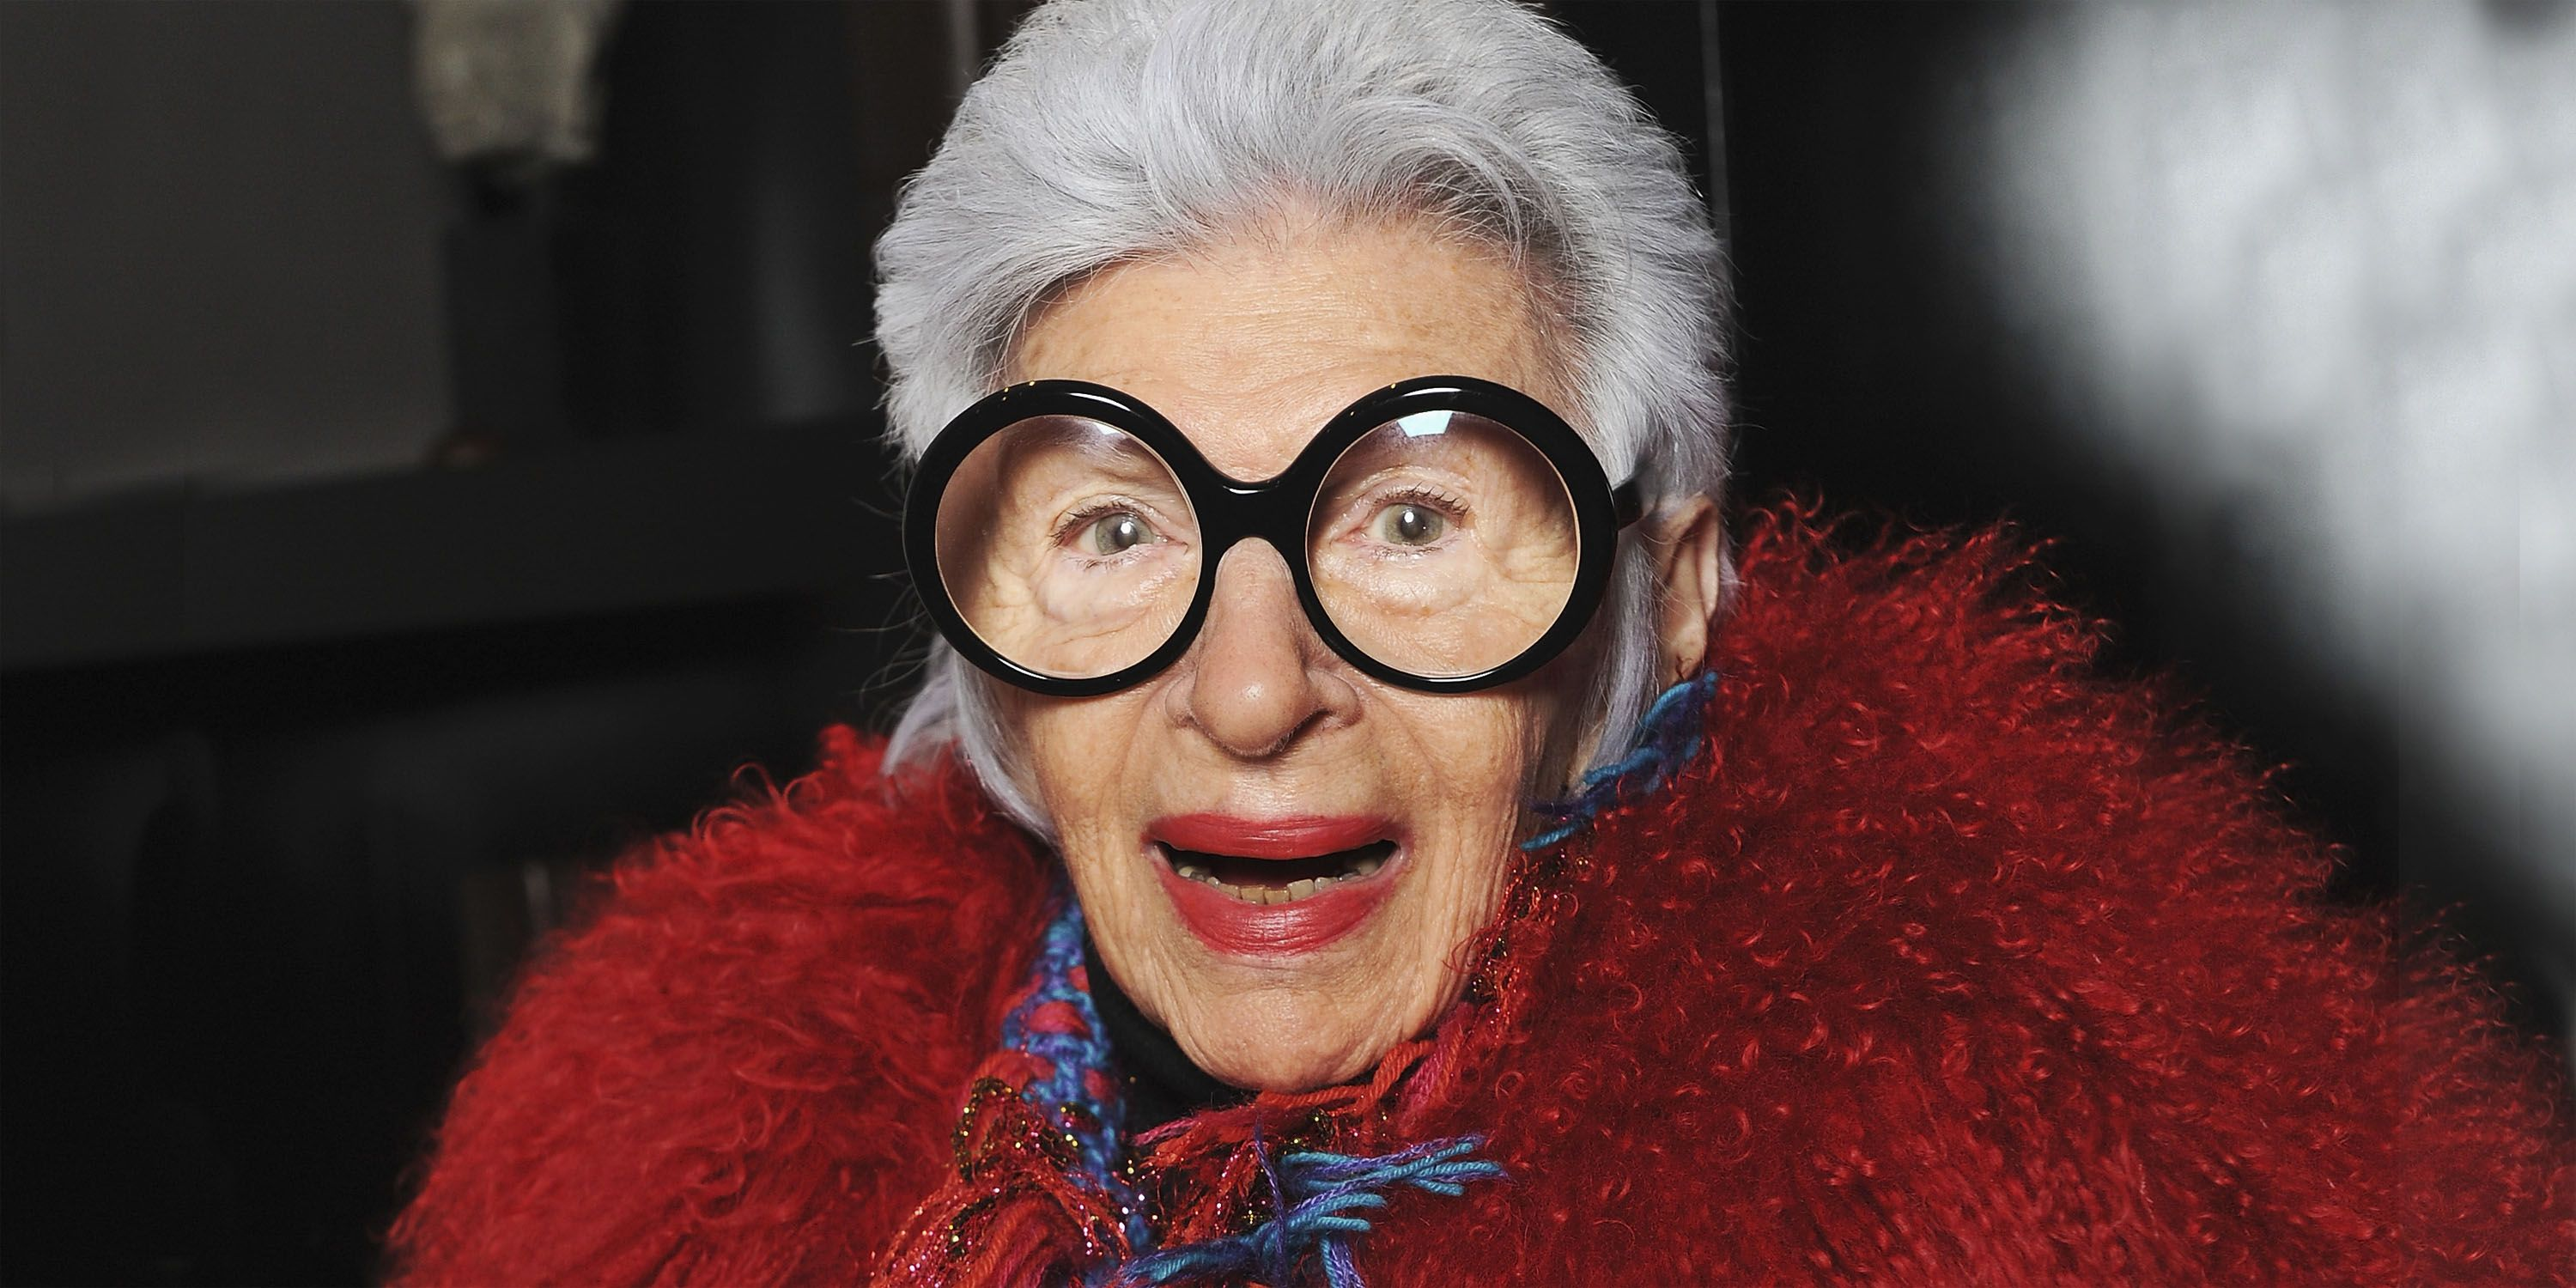 2184201f3d Iris Apfel Gives Fashion and Style Advice - Iris Apfel Movie